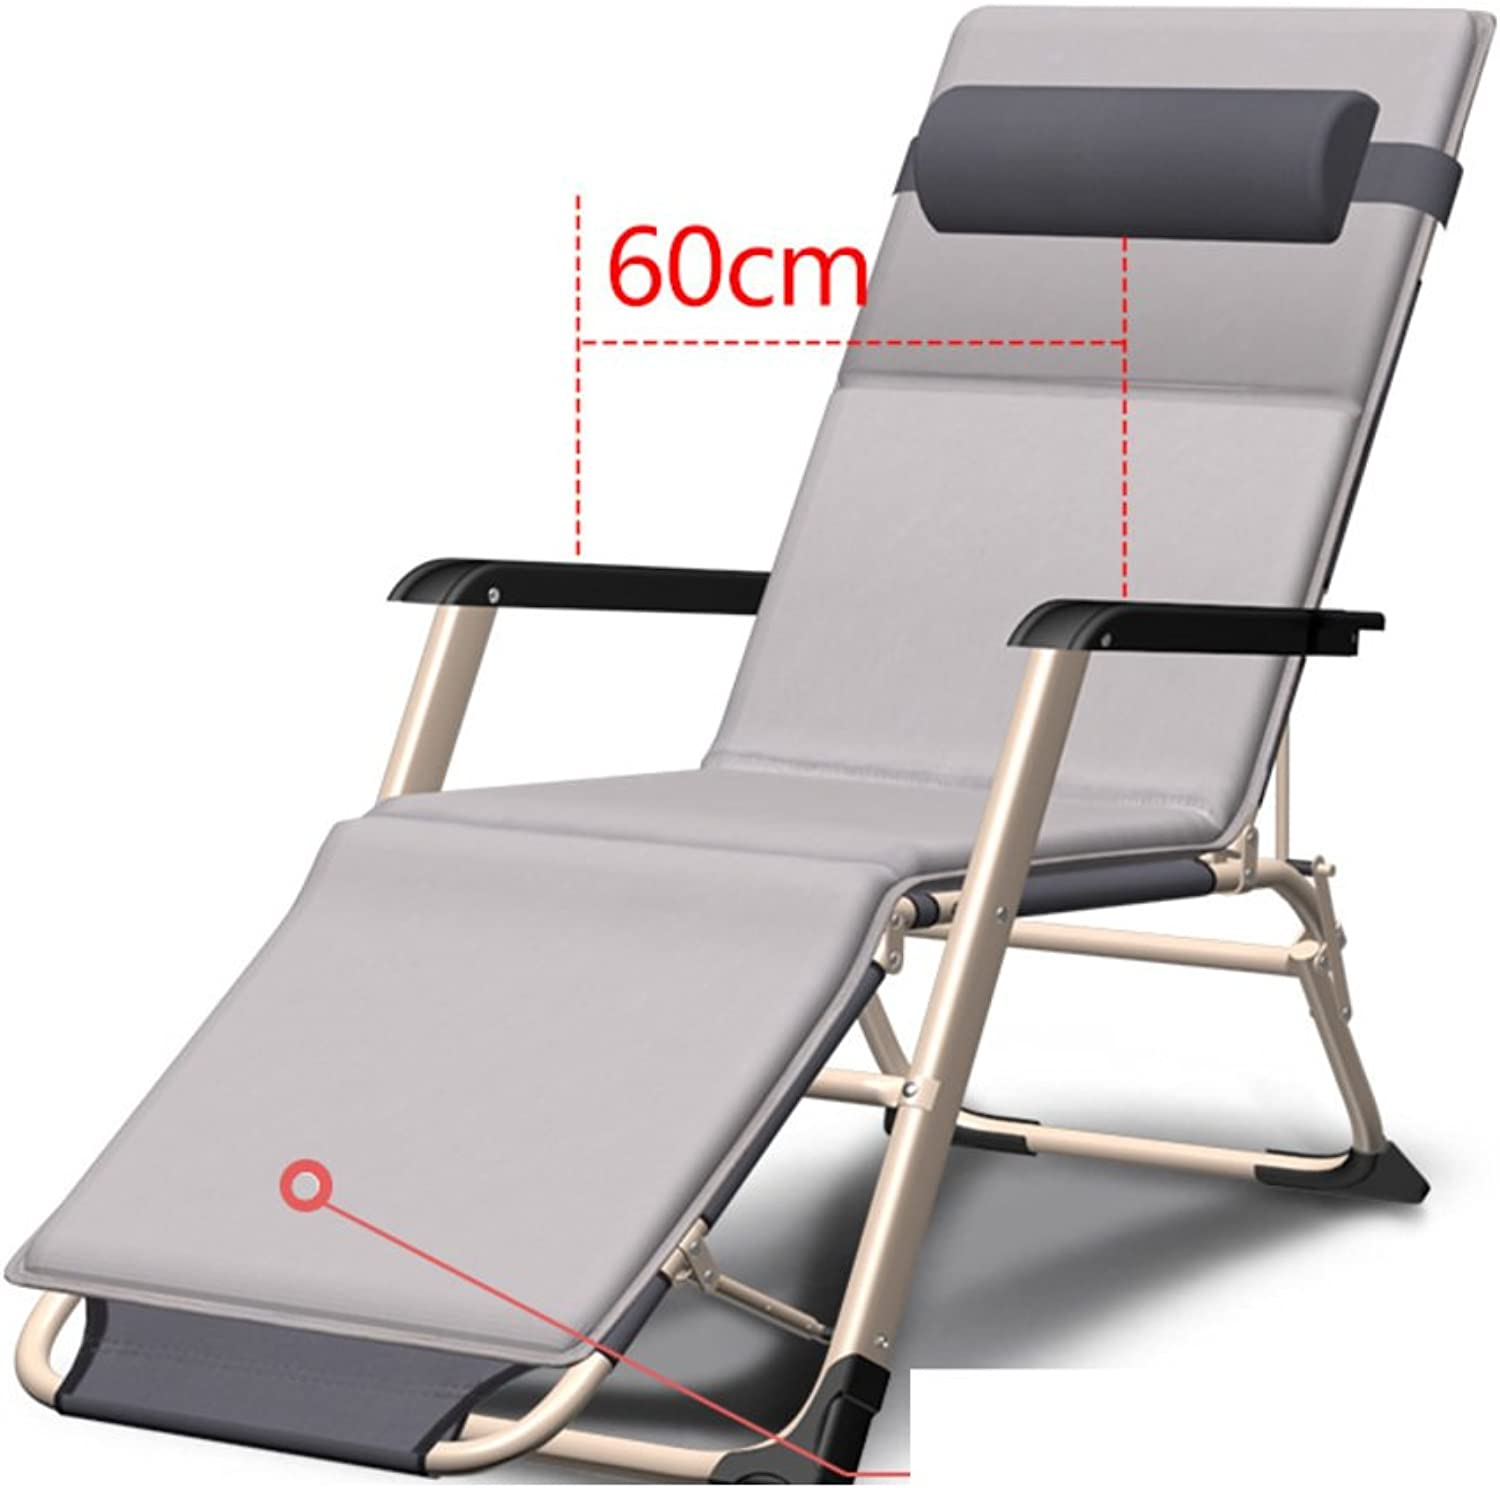 Folding Bed Single Bed Couch Folding Chair Bed Rest Office Simple Bed Camp Bed Nap Bed Portable Bed-H